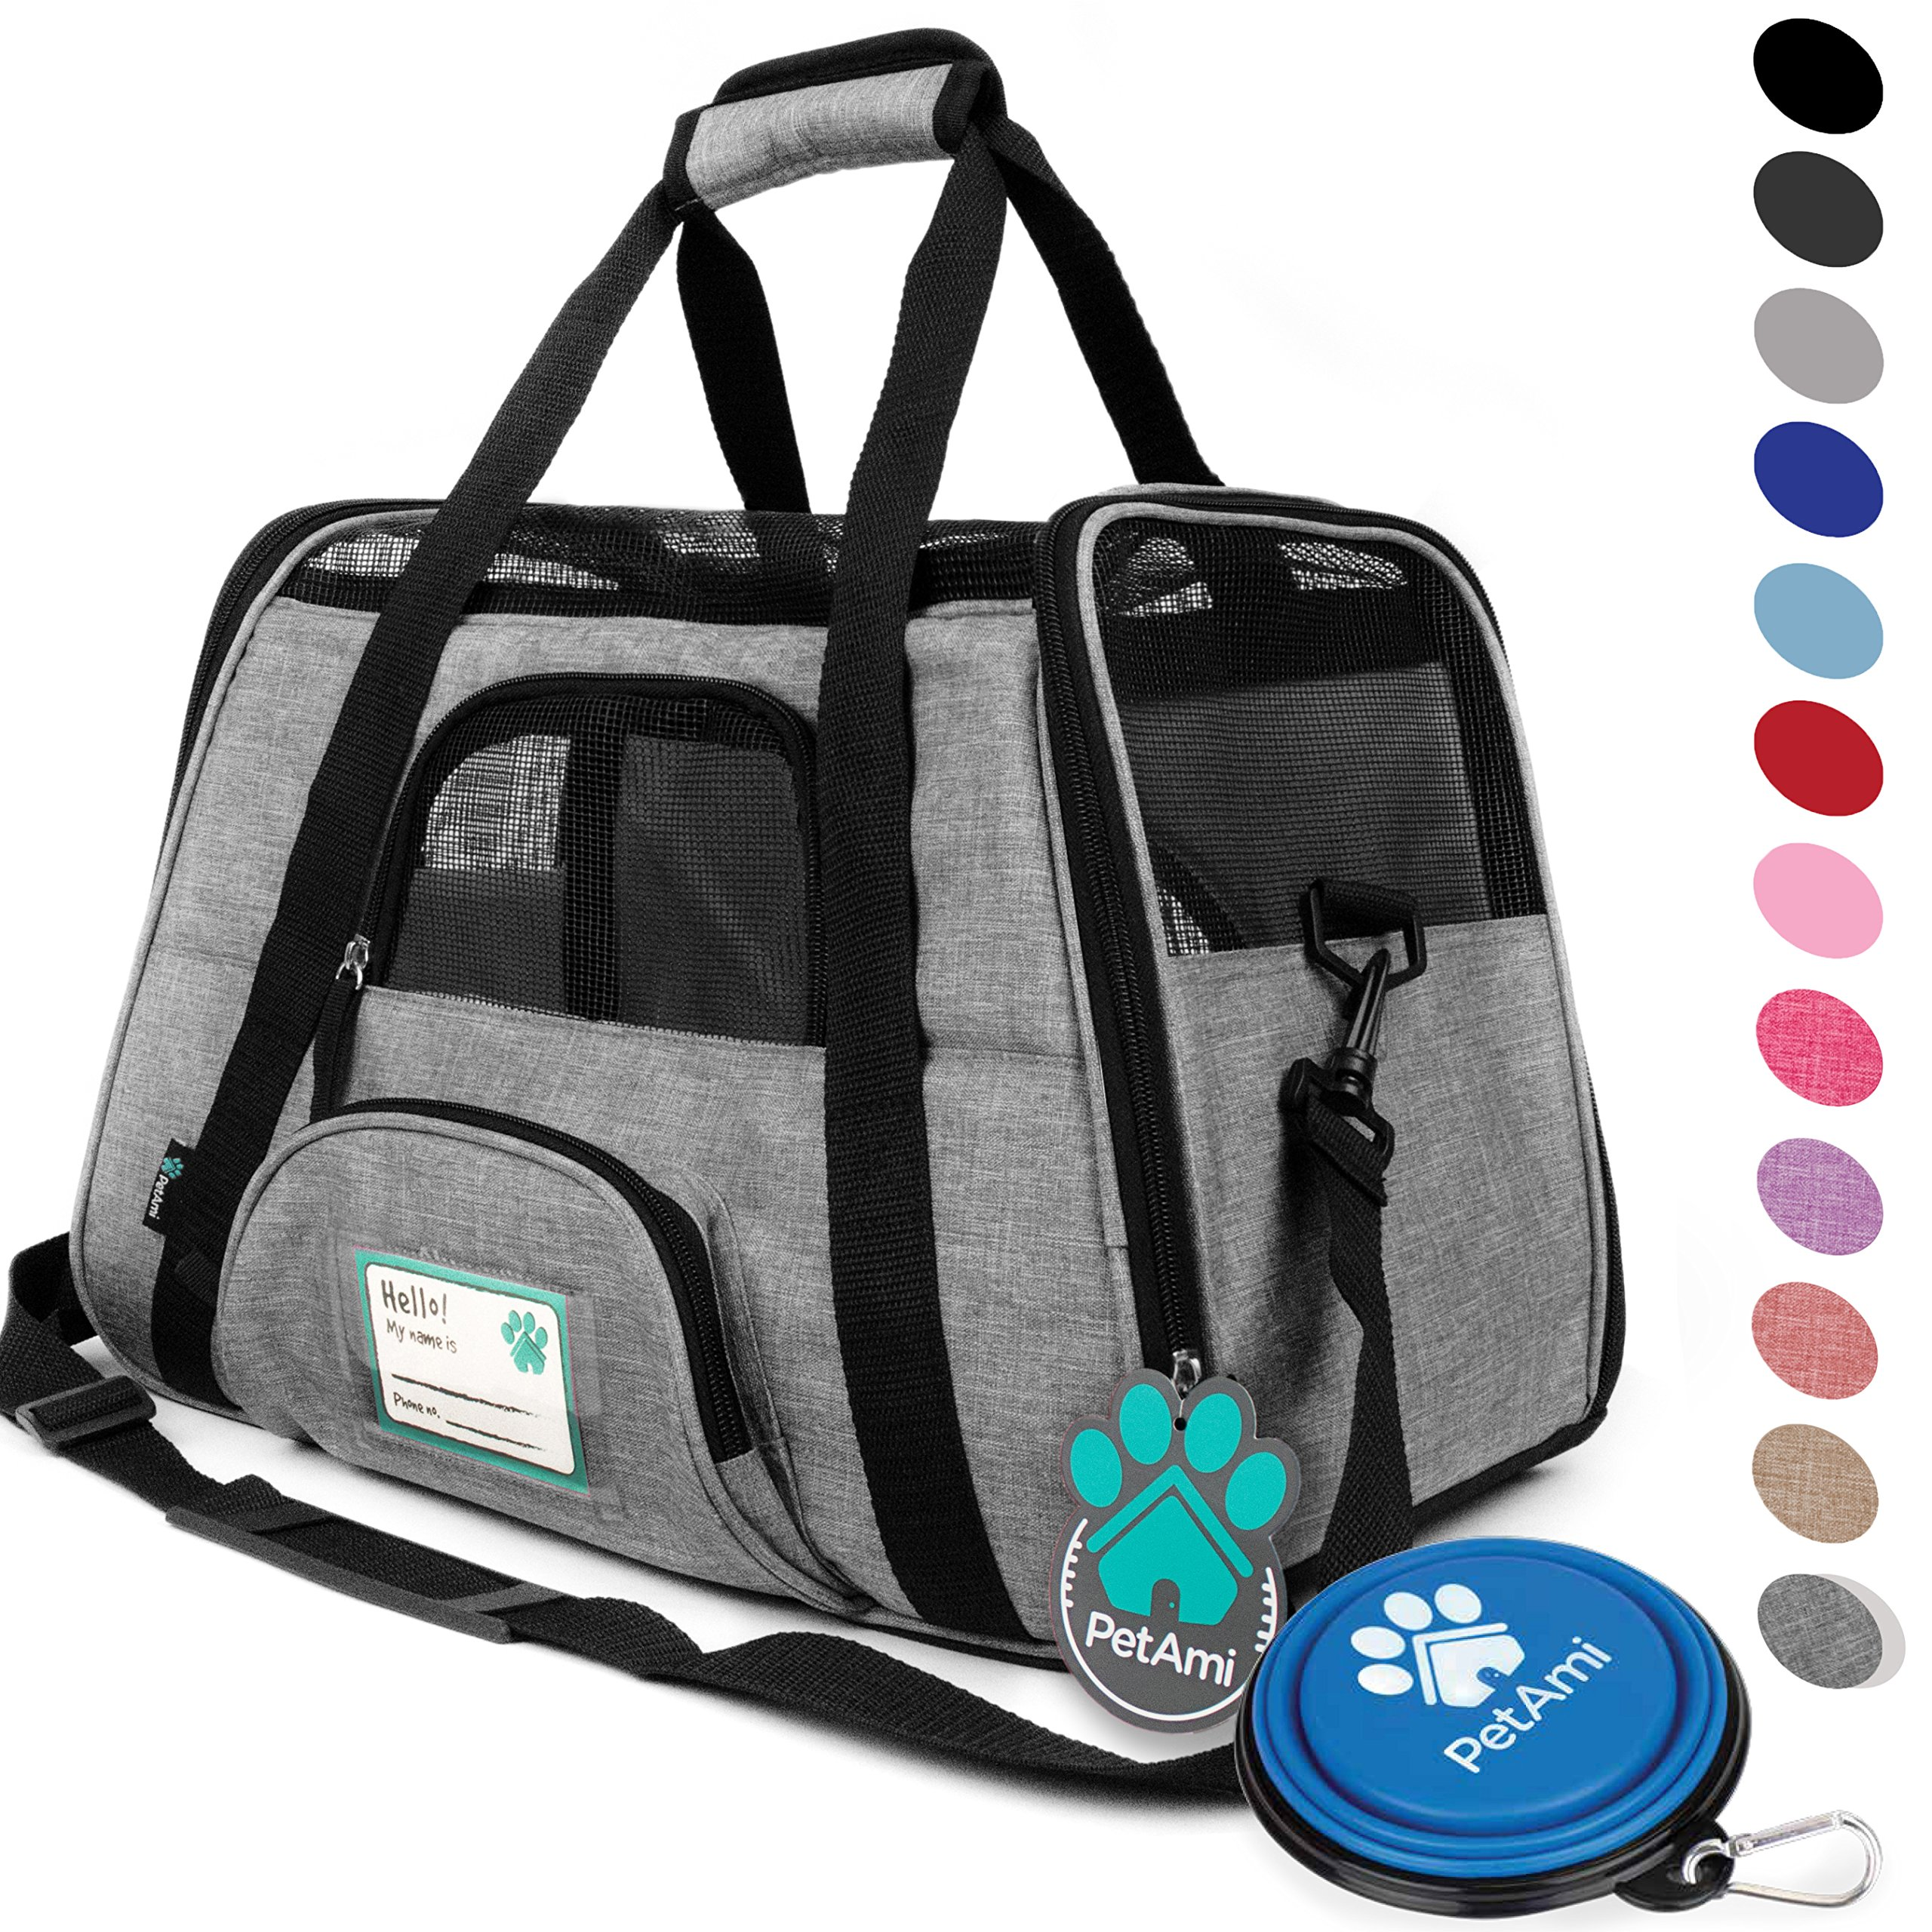 PetAmi Premium Airline Approved Soft-Sided Pet Travel Carrier | Ventilated, Comfortable Design with Safety Features | Ideal for Small to Medium Sized Cats, Dogs, and Pets (Small, Heather Gray)